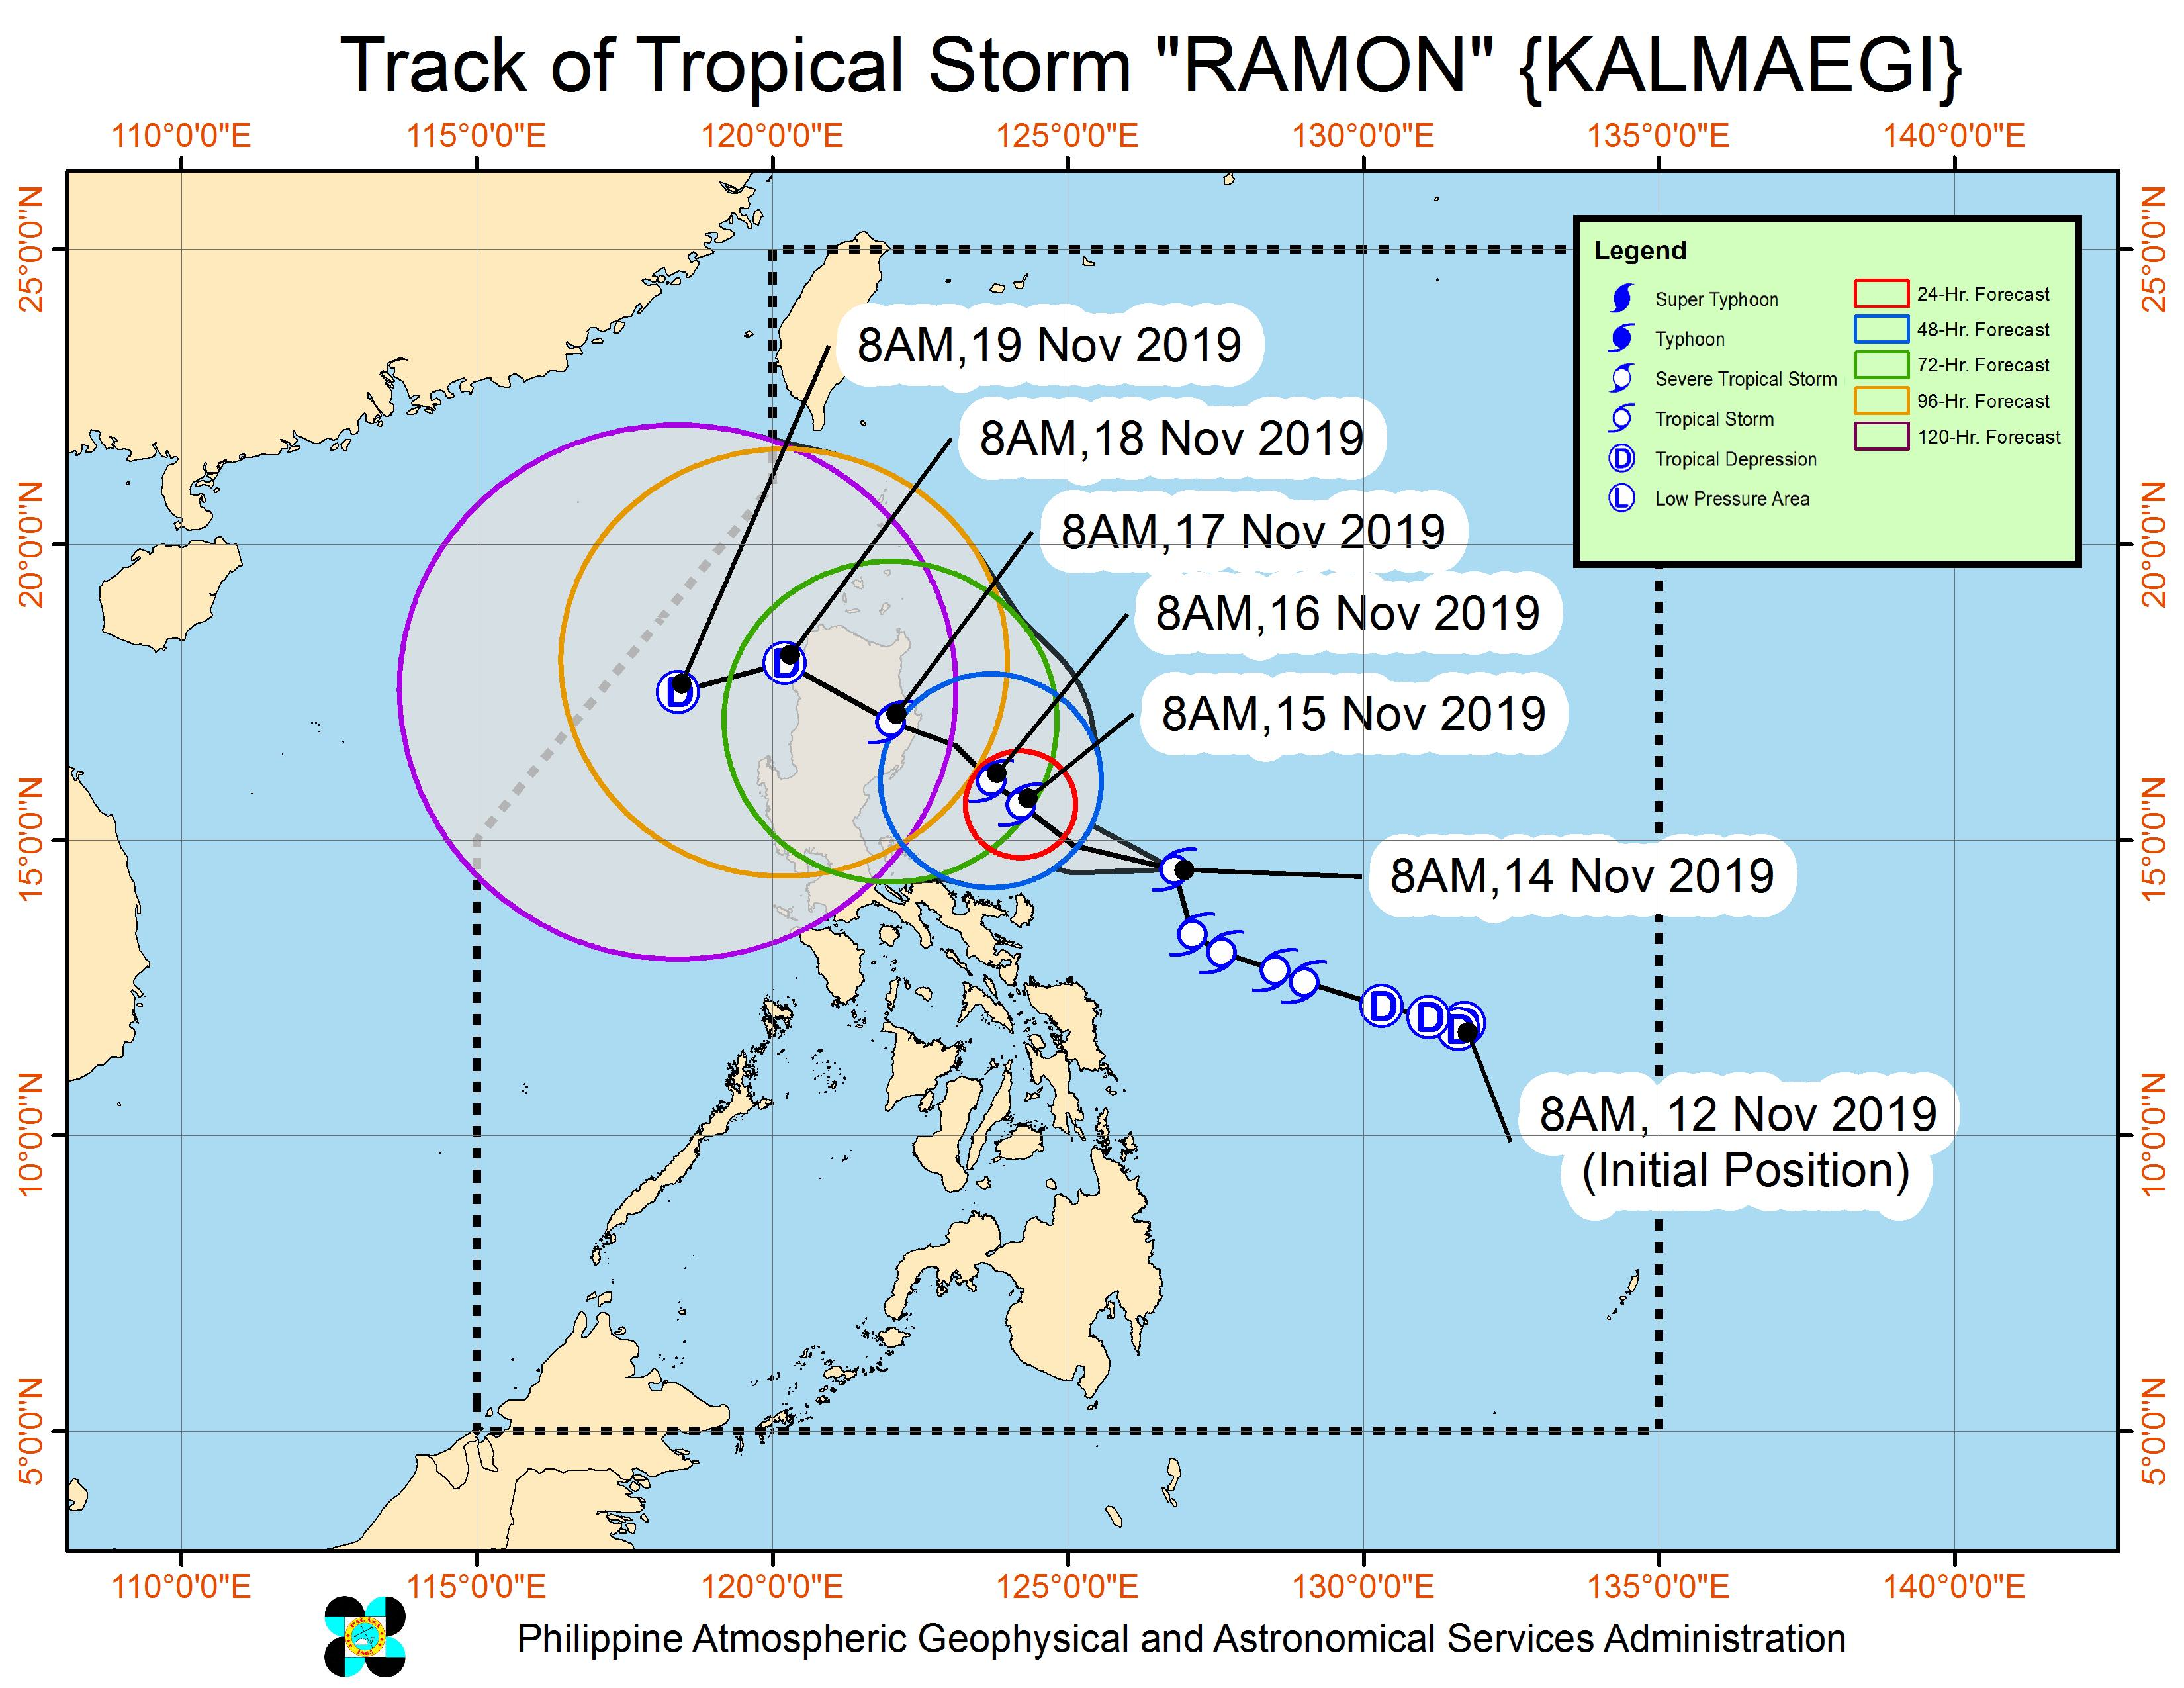 Forecast track of Tropical Storm Ramon (Kalmaegi) as of November 14, 2019, 11 am. Image from PAGASA